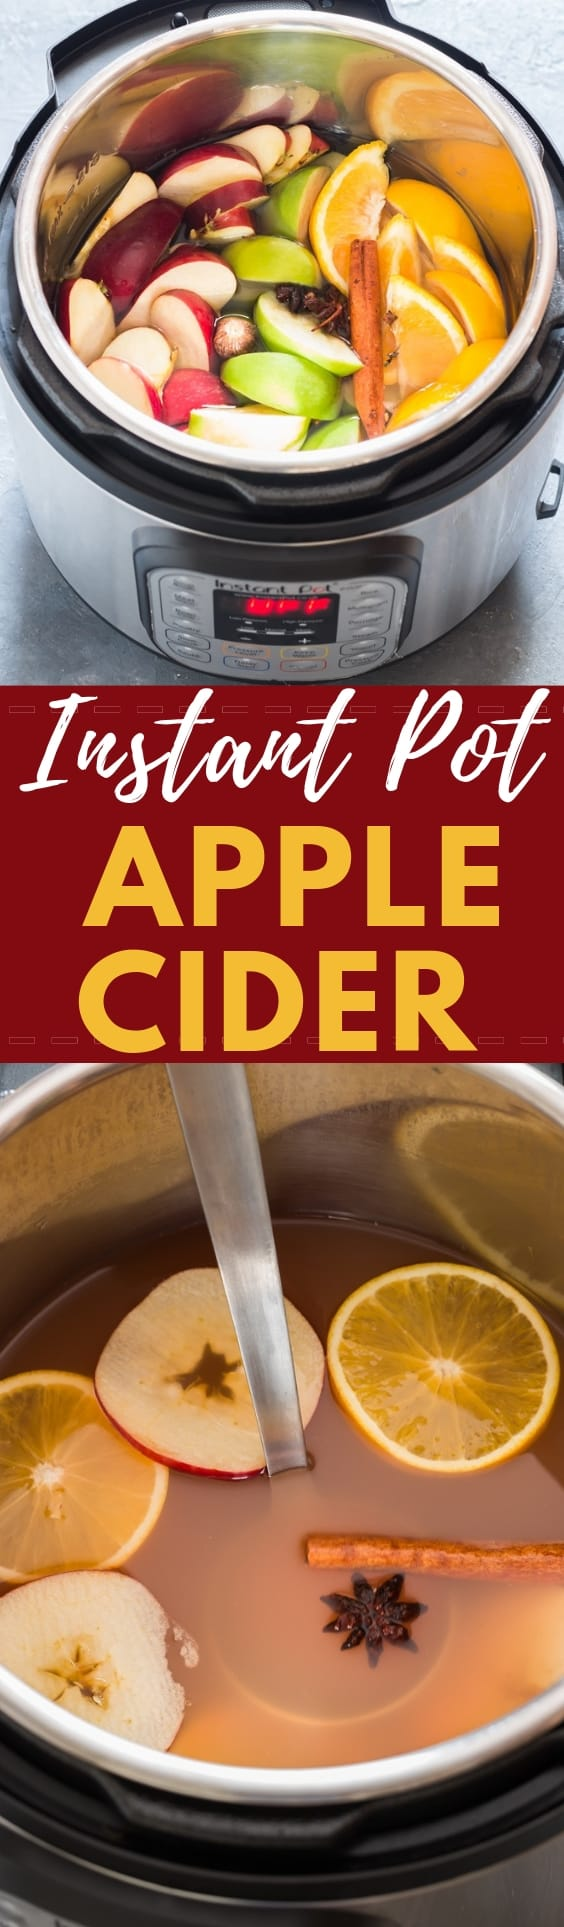 Instant pot spiced apple cider with text overlay